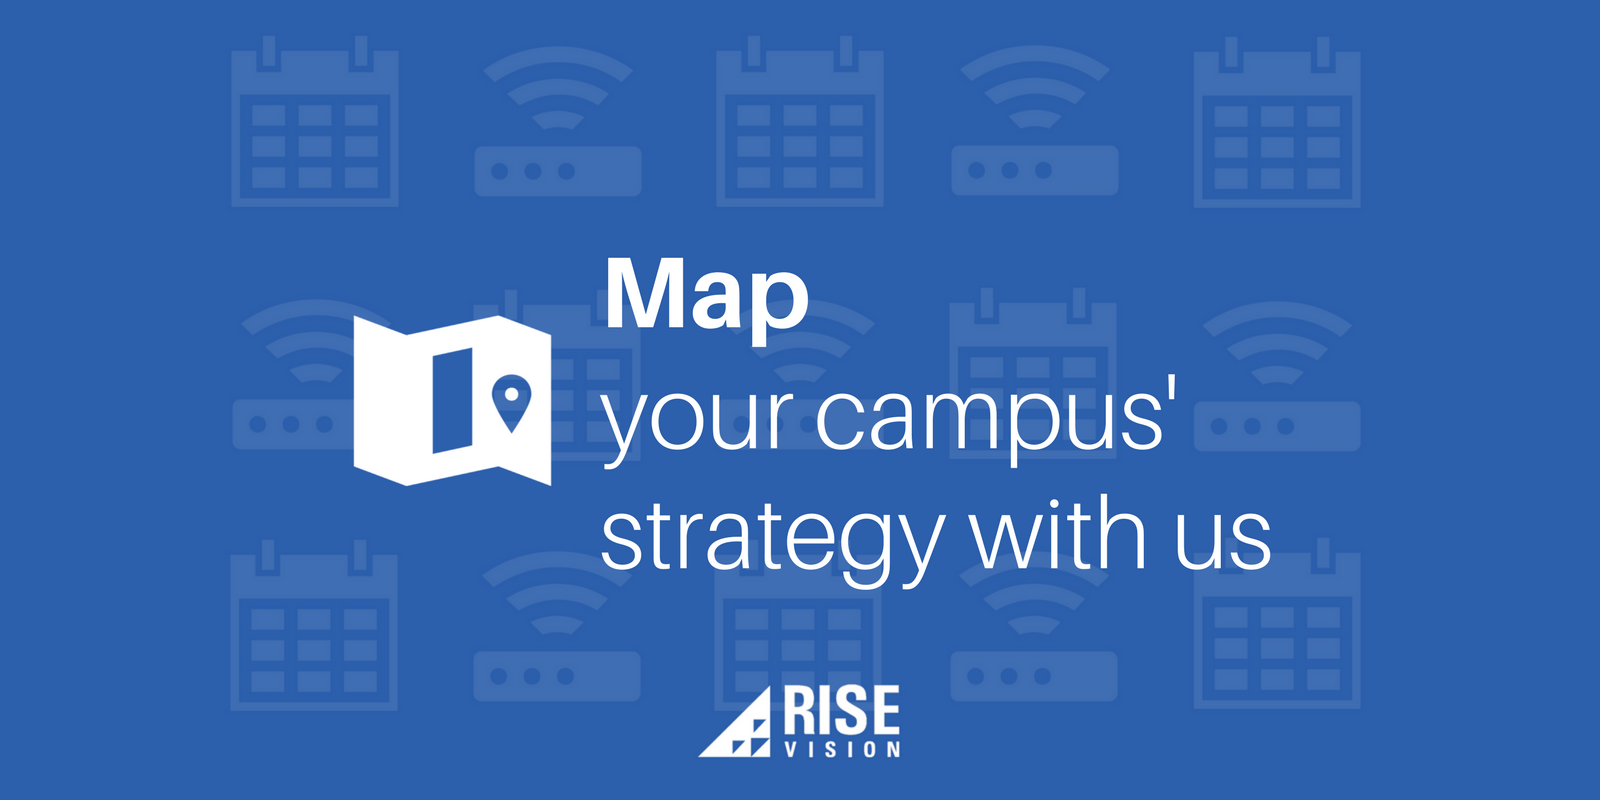 Rise Vision Digital Signage Education Content Strategy.png